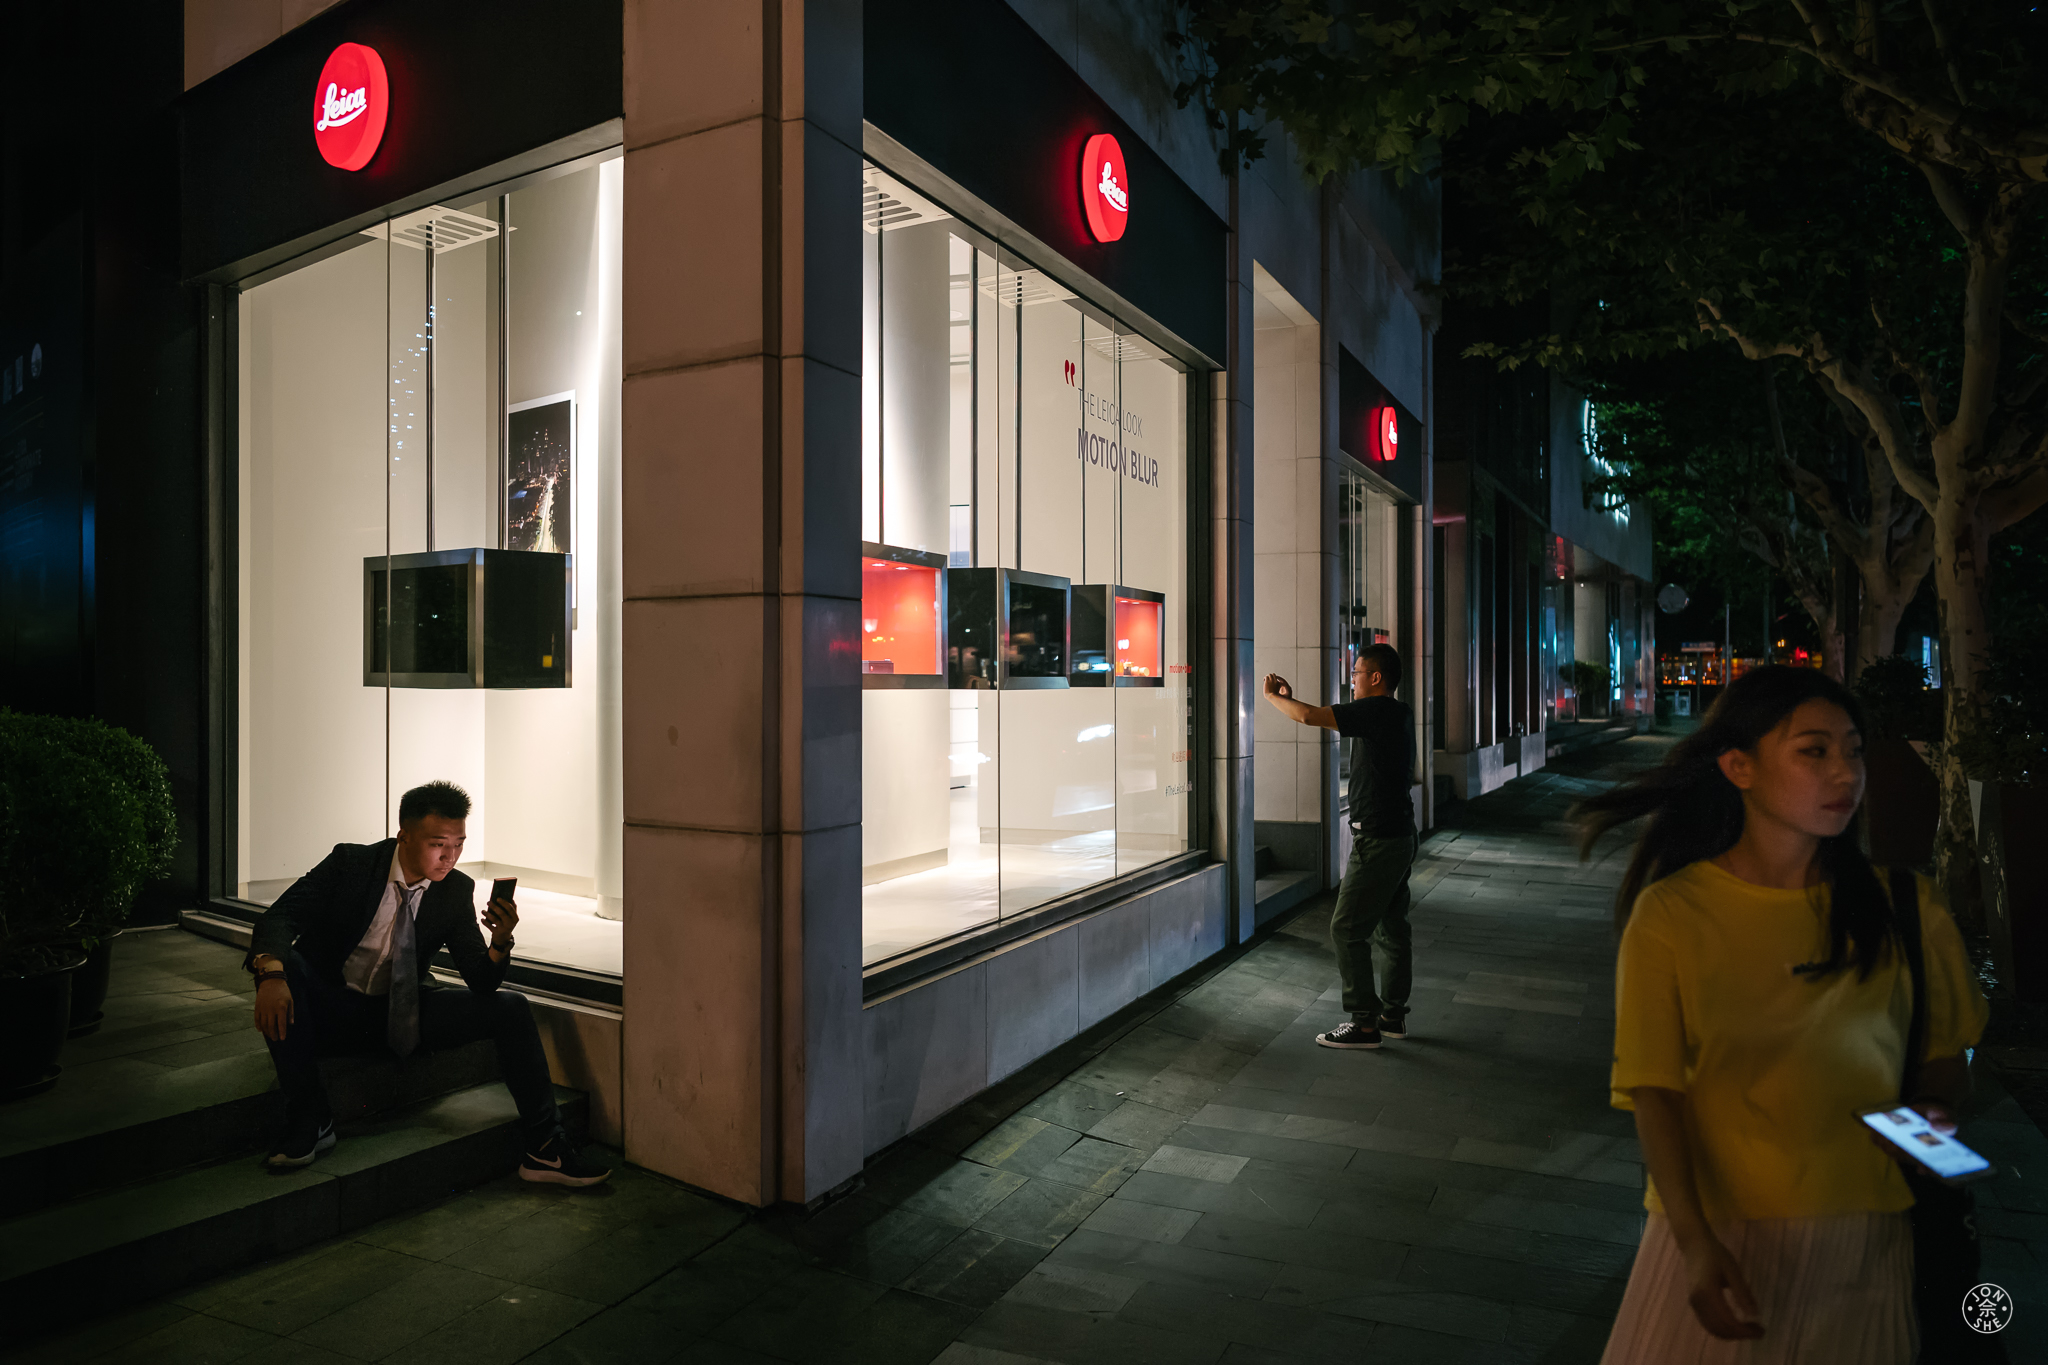 A WeChat Night at Leica